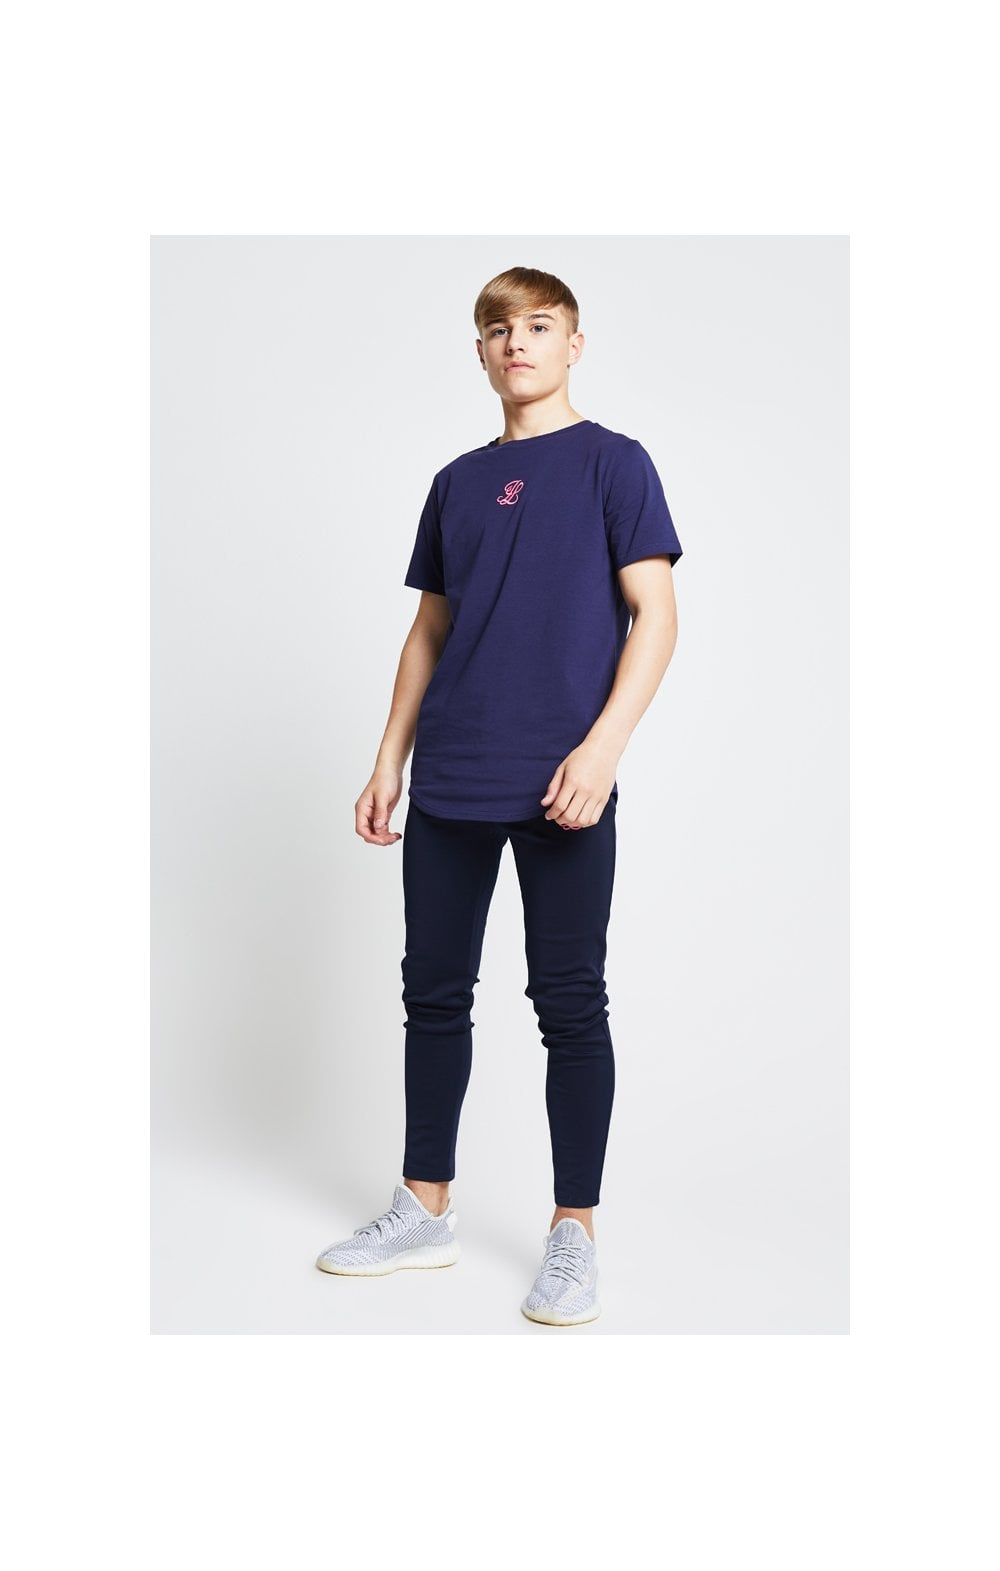 Load image into Gallery viewer, Illusive London Racer Back Tee – Navy & Neon Pink Camo (3)